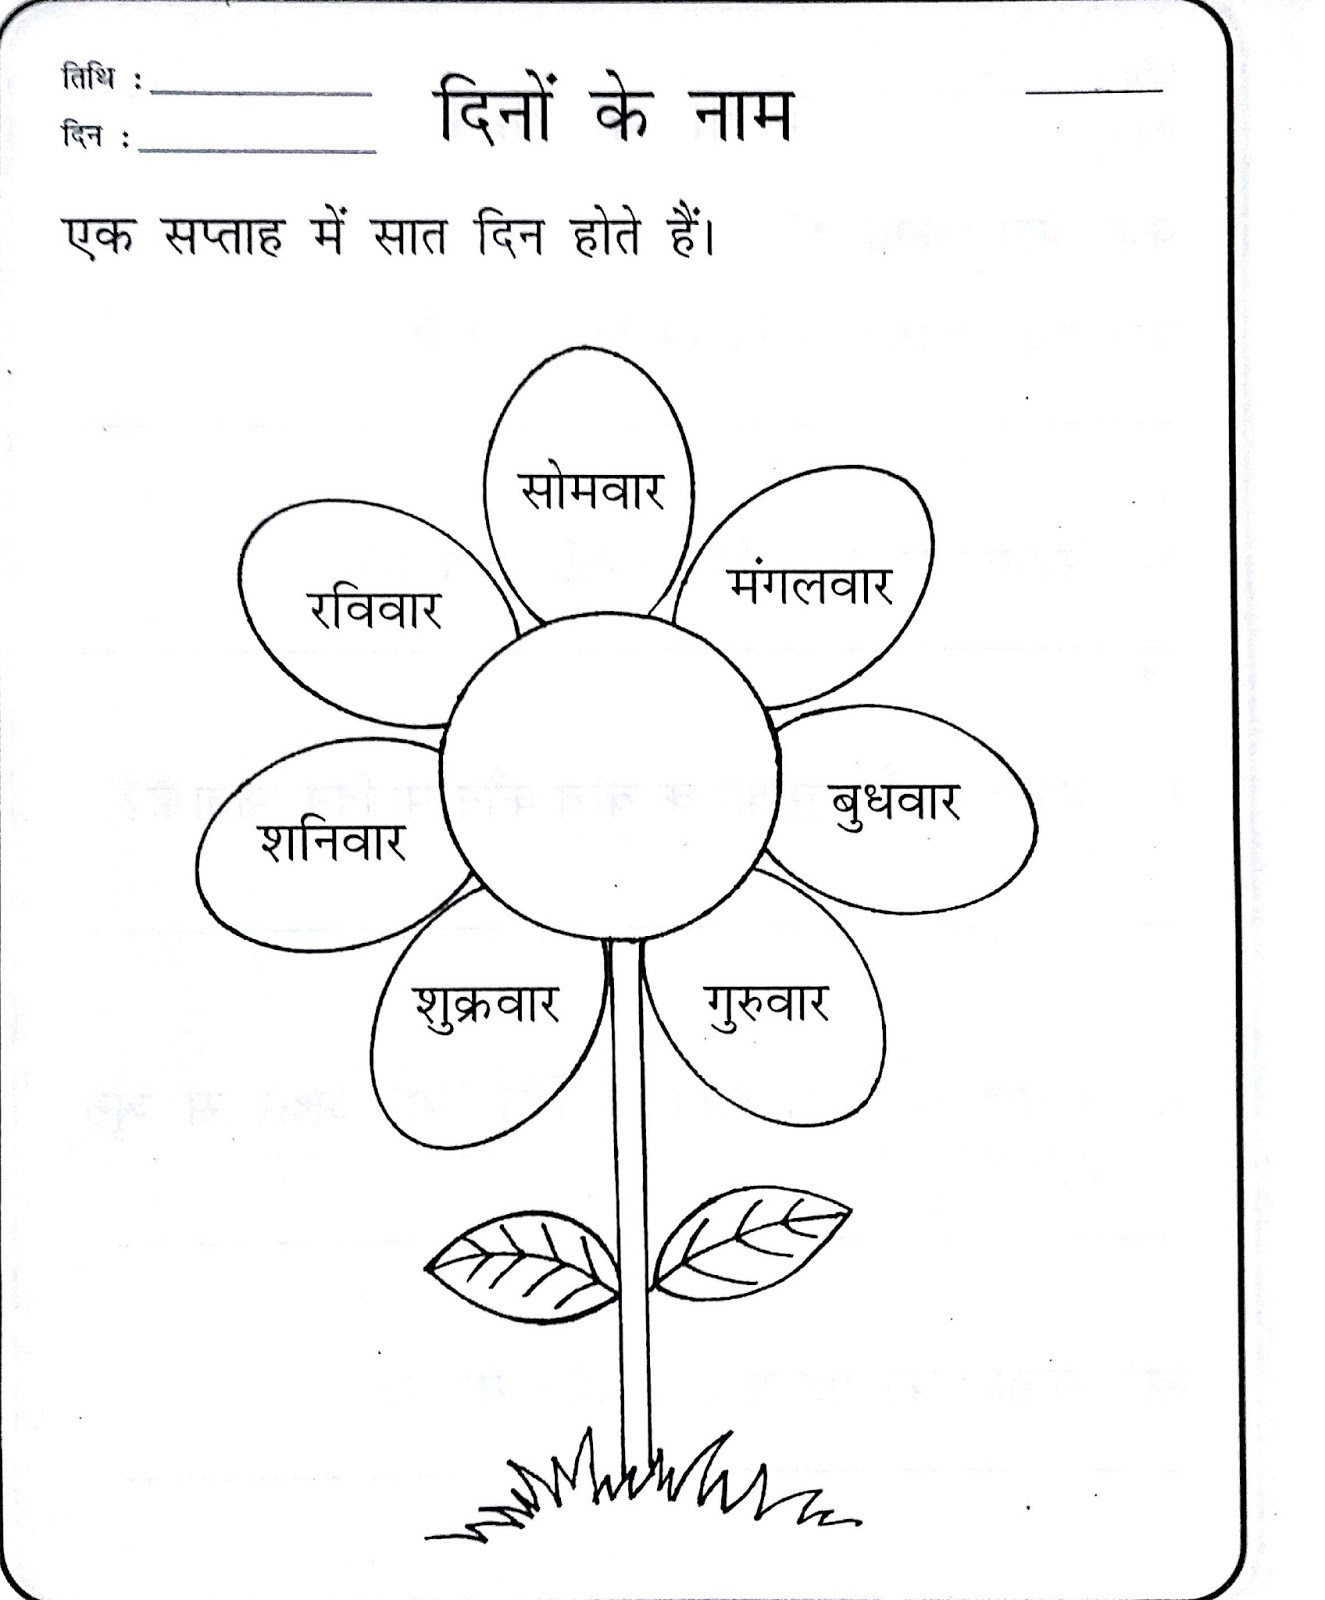 3rd Grade Volume Worksheets Hindi Worksheets for Beginners Printable and Super Teacher